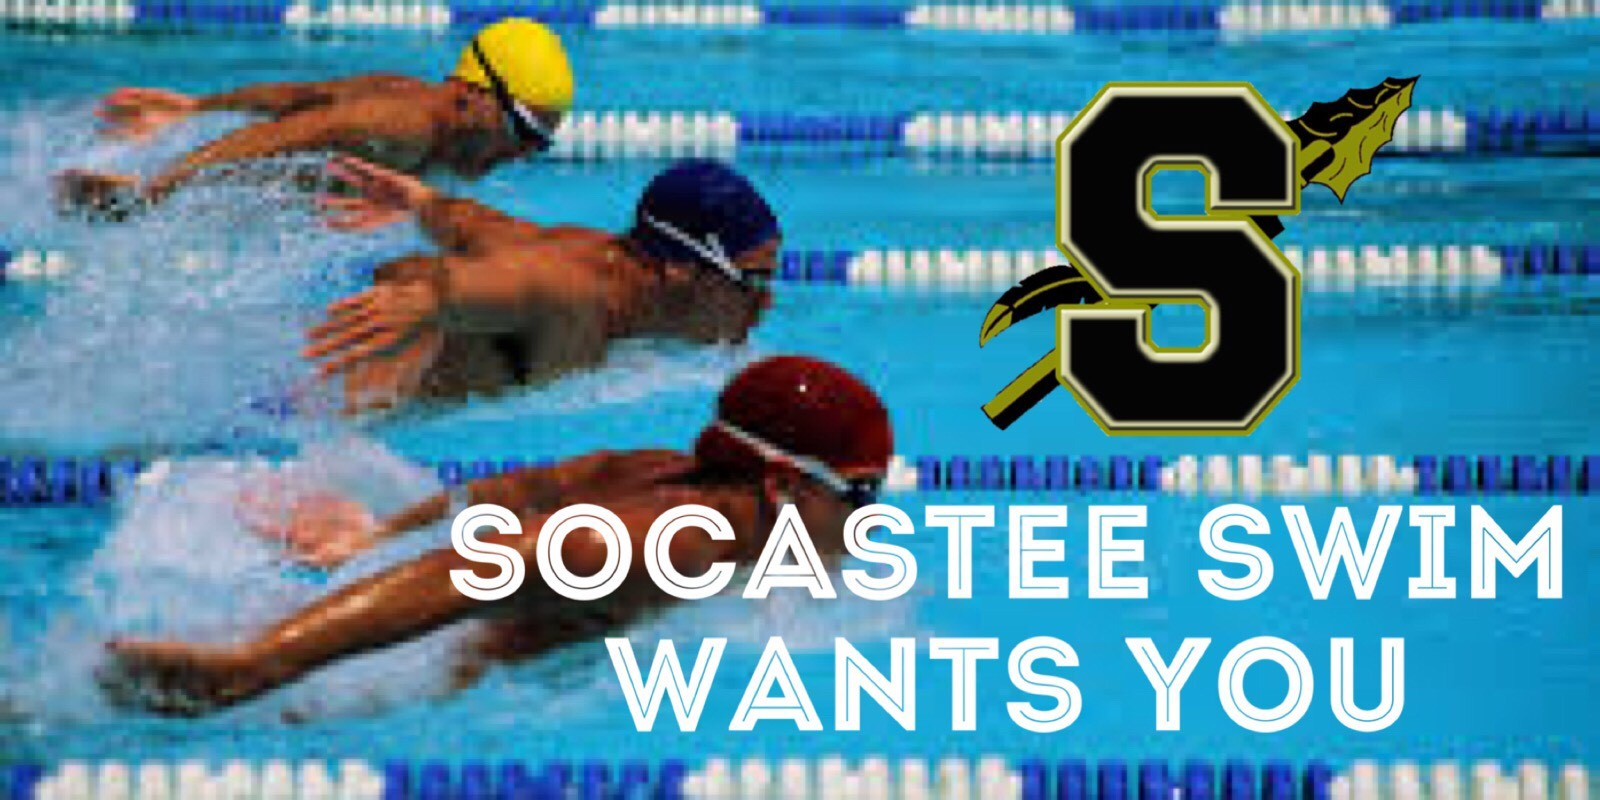 Everything You Need To Know About Swimming For Socastee